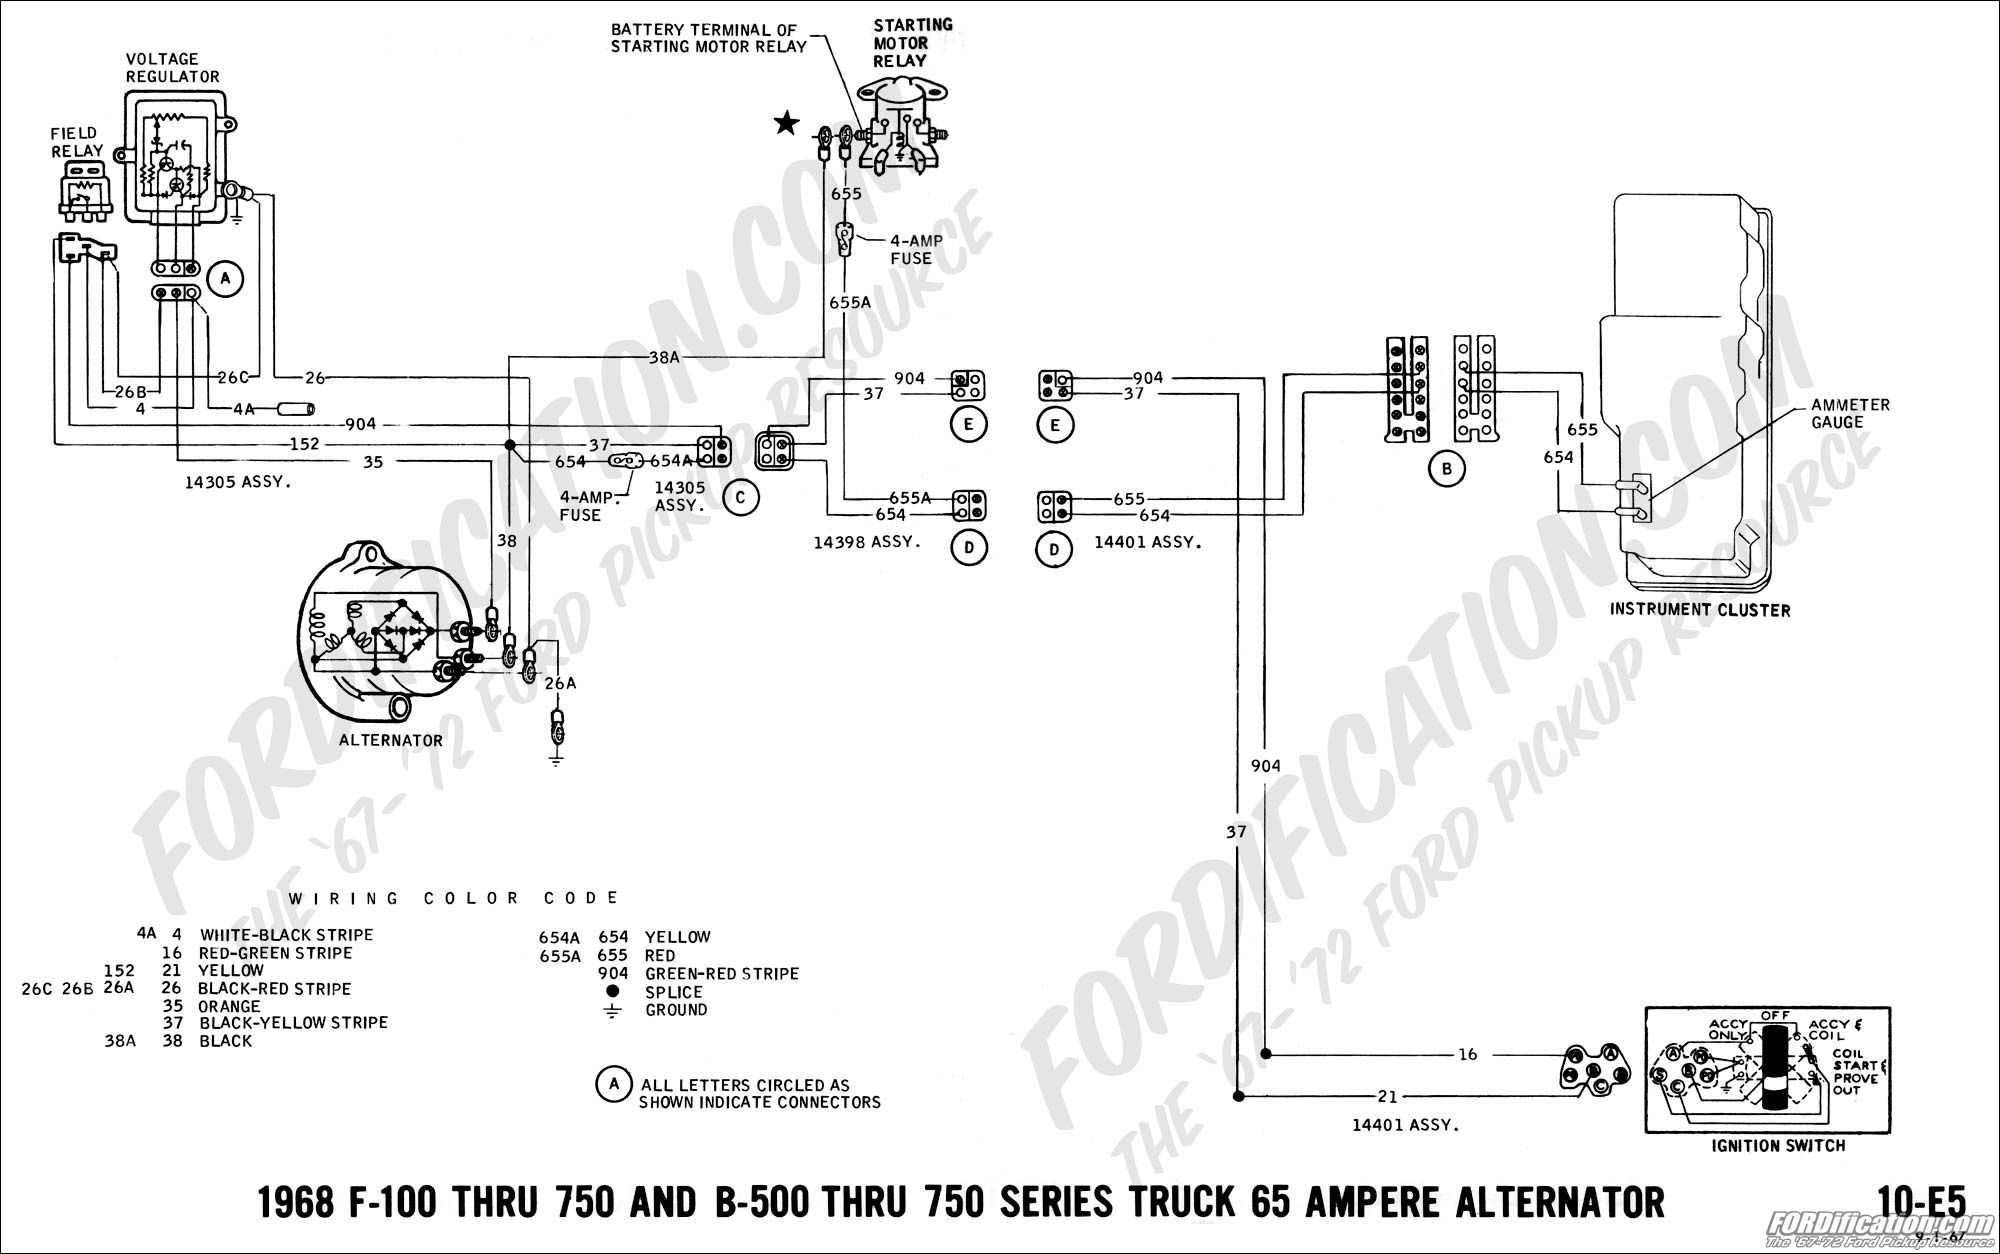 1966 ford f100 alternator diagram wiring diagram inside66 ford alt diagram wiring diagram paper 1966 ford [ 2000 x 1254 Pixel ]